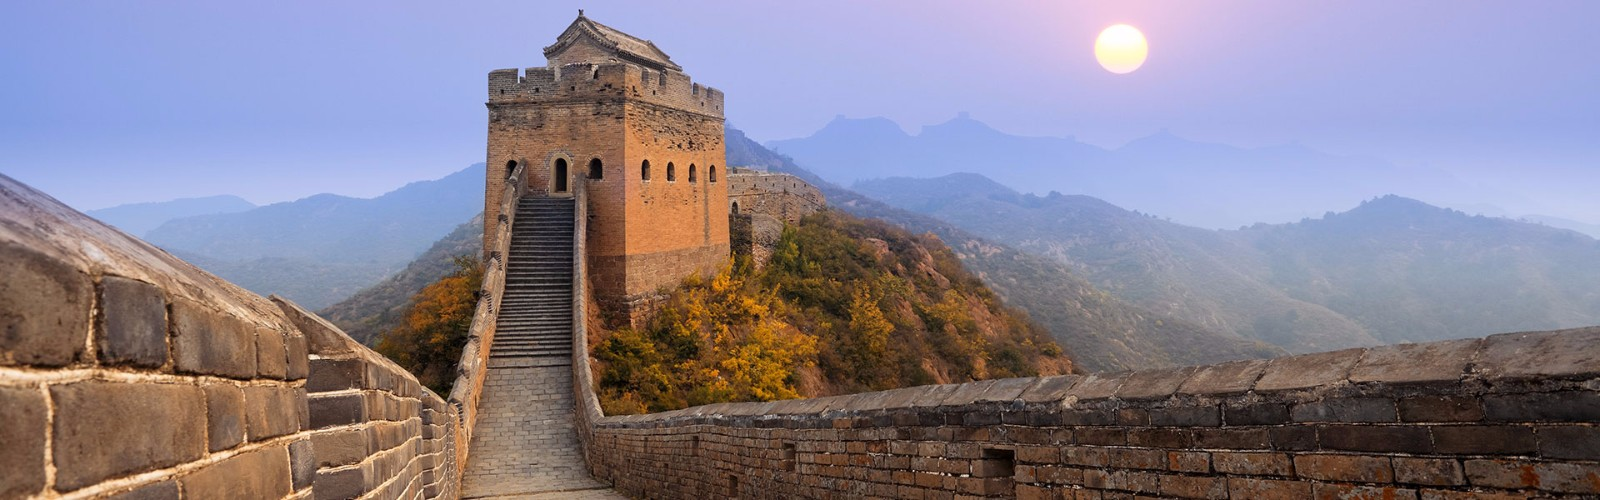 Wonders of China Tour | Wendy Wu Tours